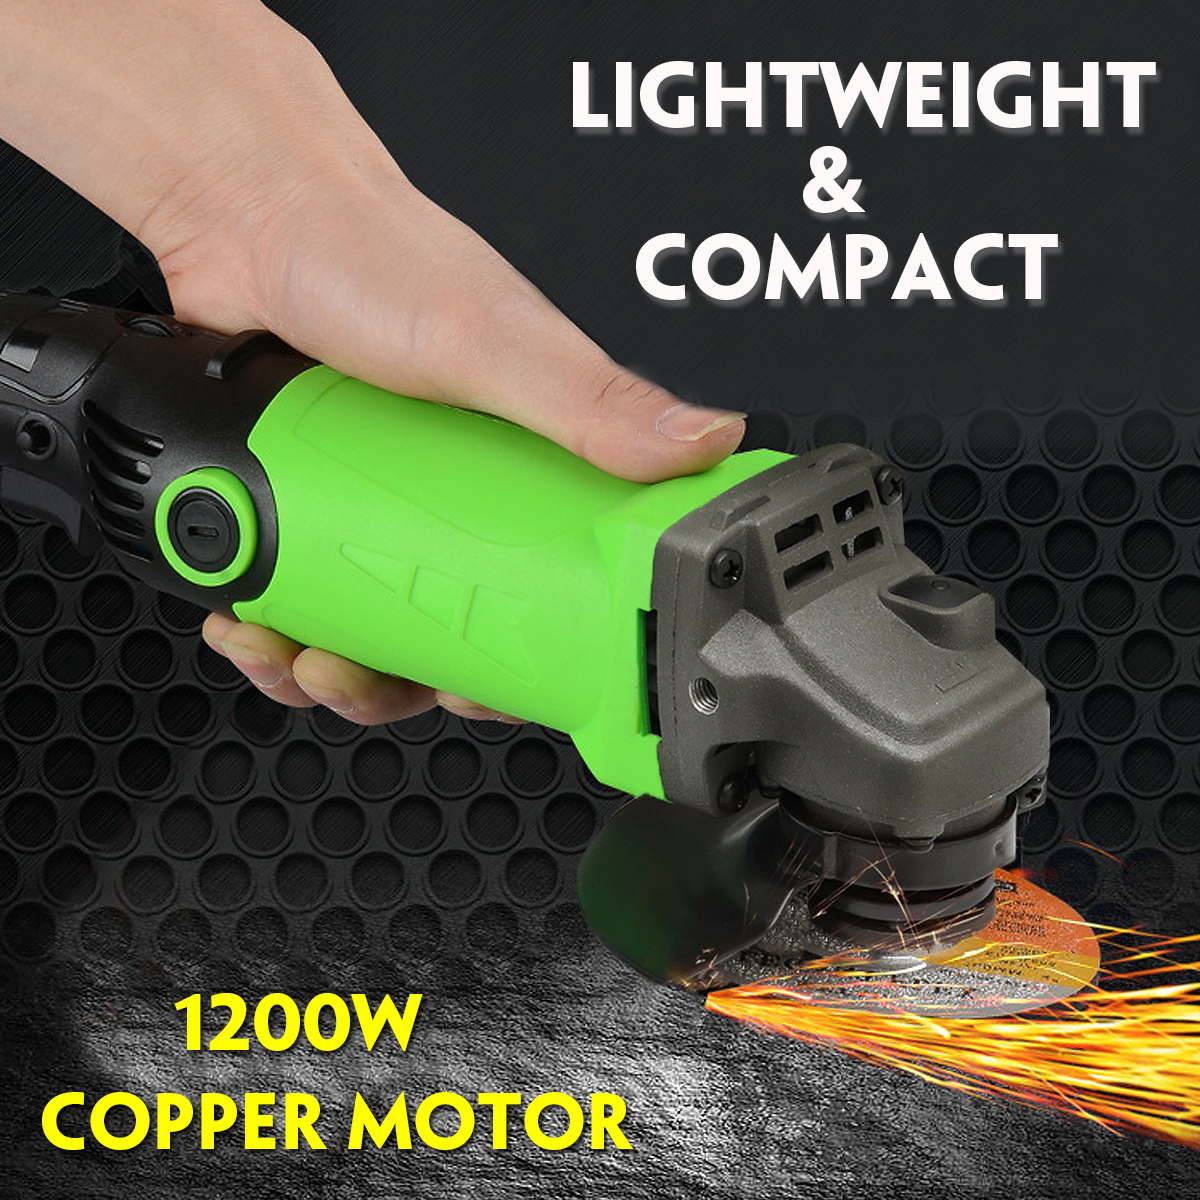 1Set 220V 1200W Multipurpose Angle Grinder 6 Levels Speed Adjustable Polishing Machine With Grinding Drilling Tools Angle Grin vibration type pneumatic sanding machine rectangle grinding machine sand vibration machine polishing machine 70x100mm